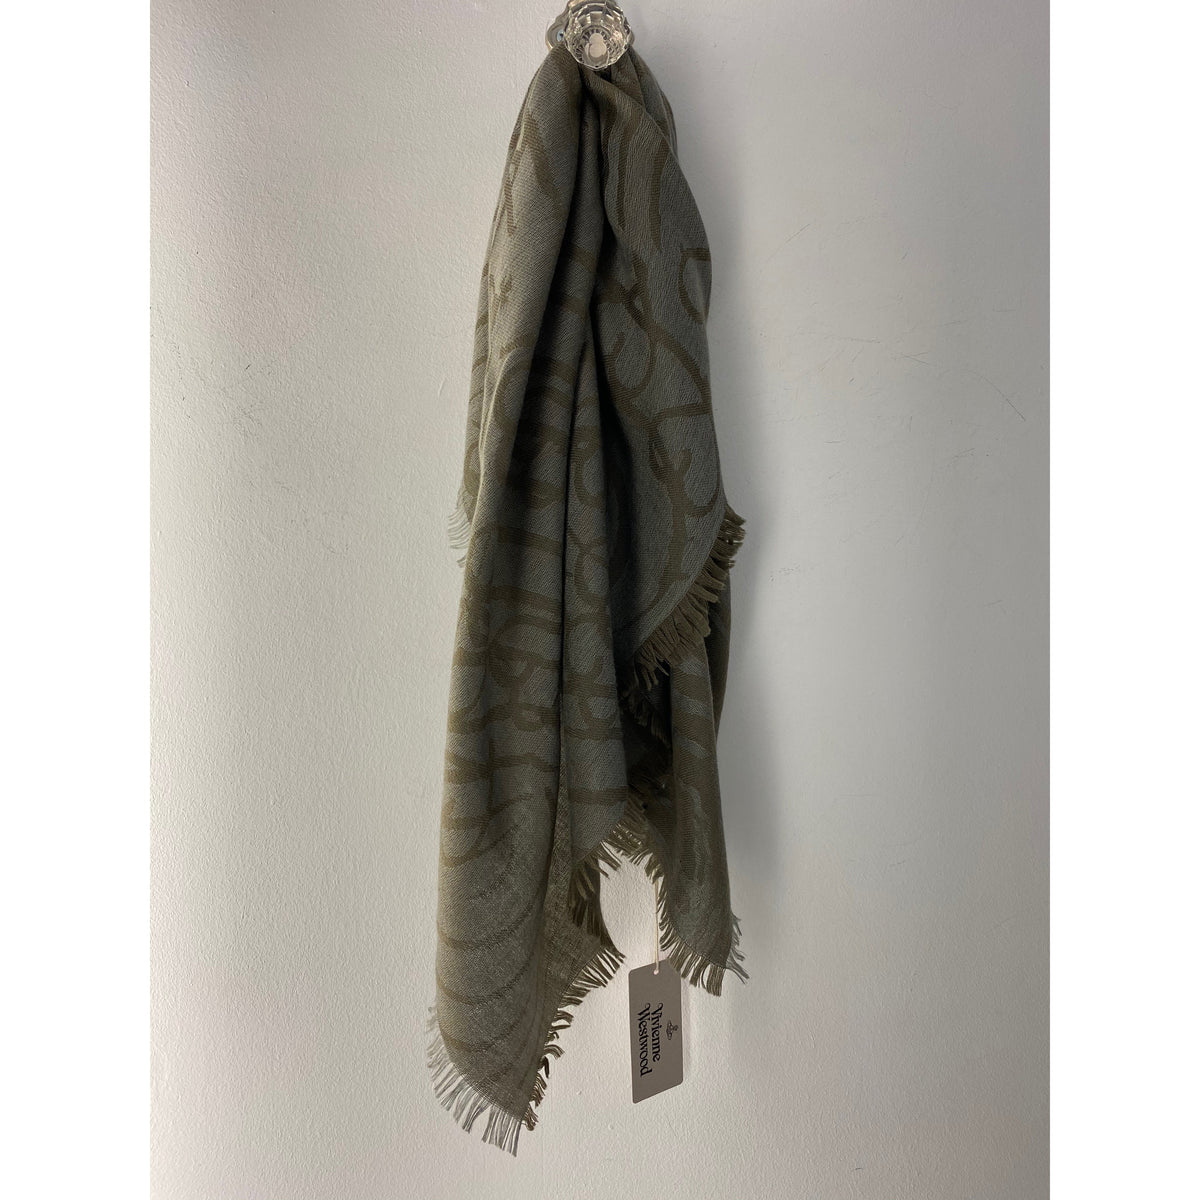 VIVIENNE WESTWOOD SQUARE WOOL MIX SCARF GREEN